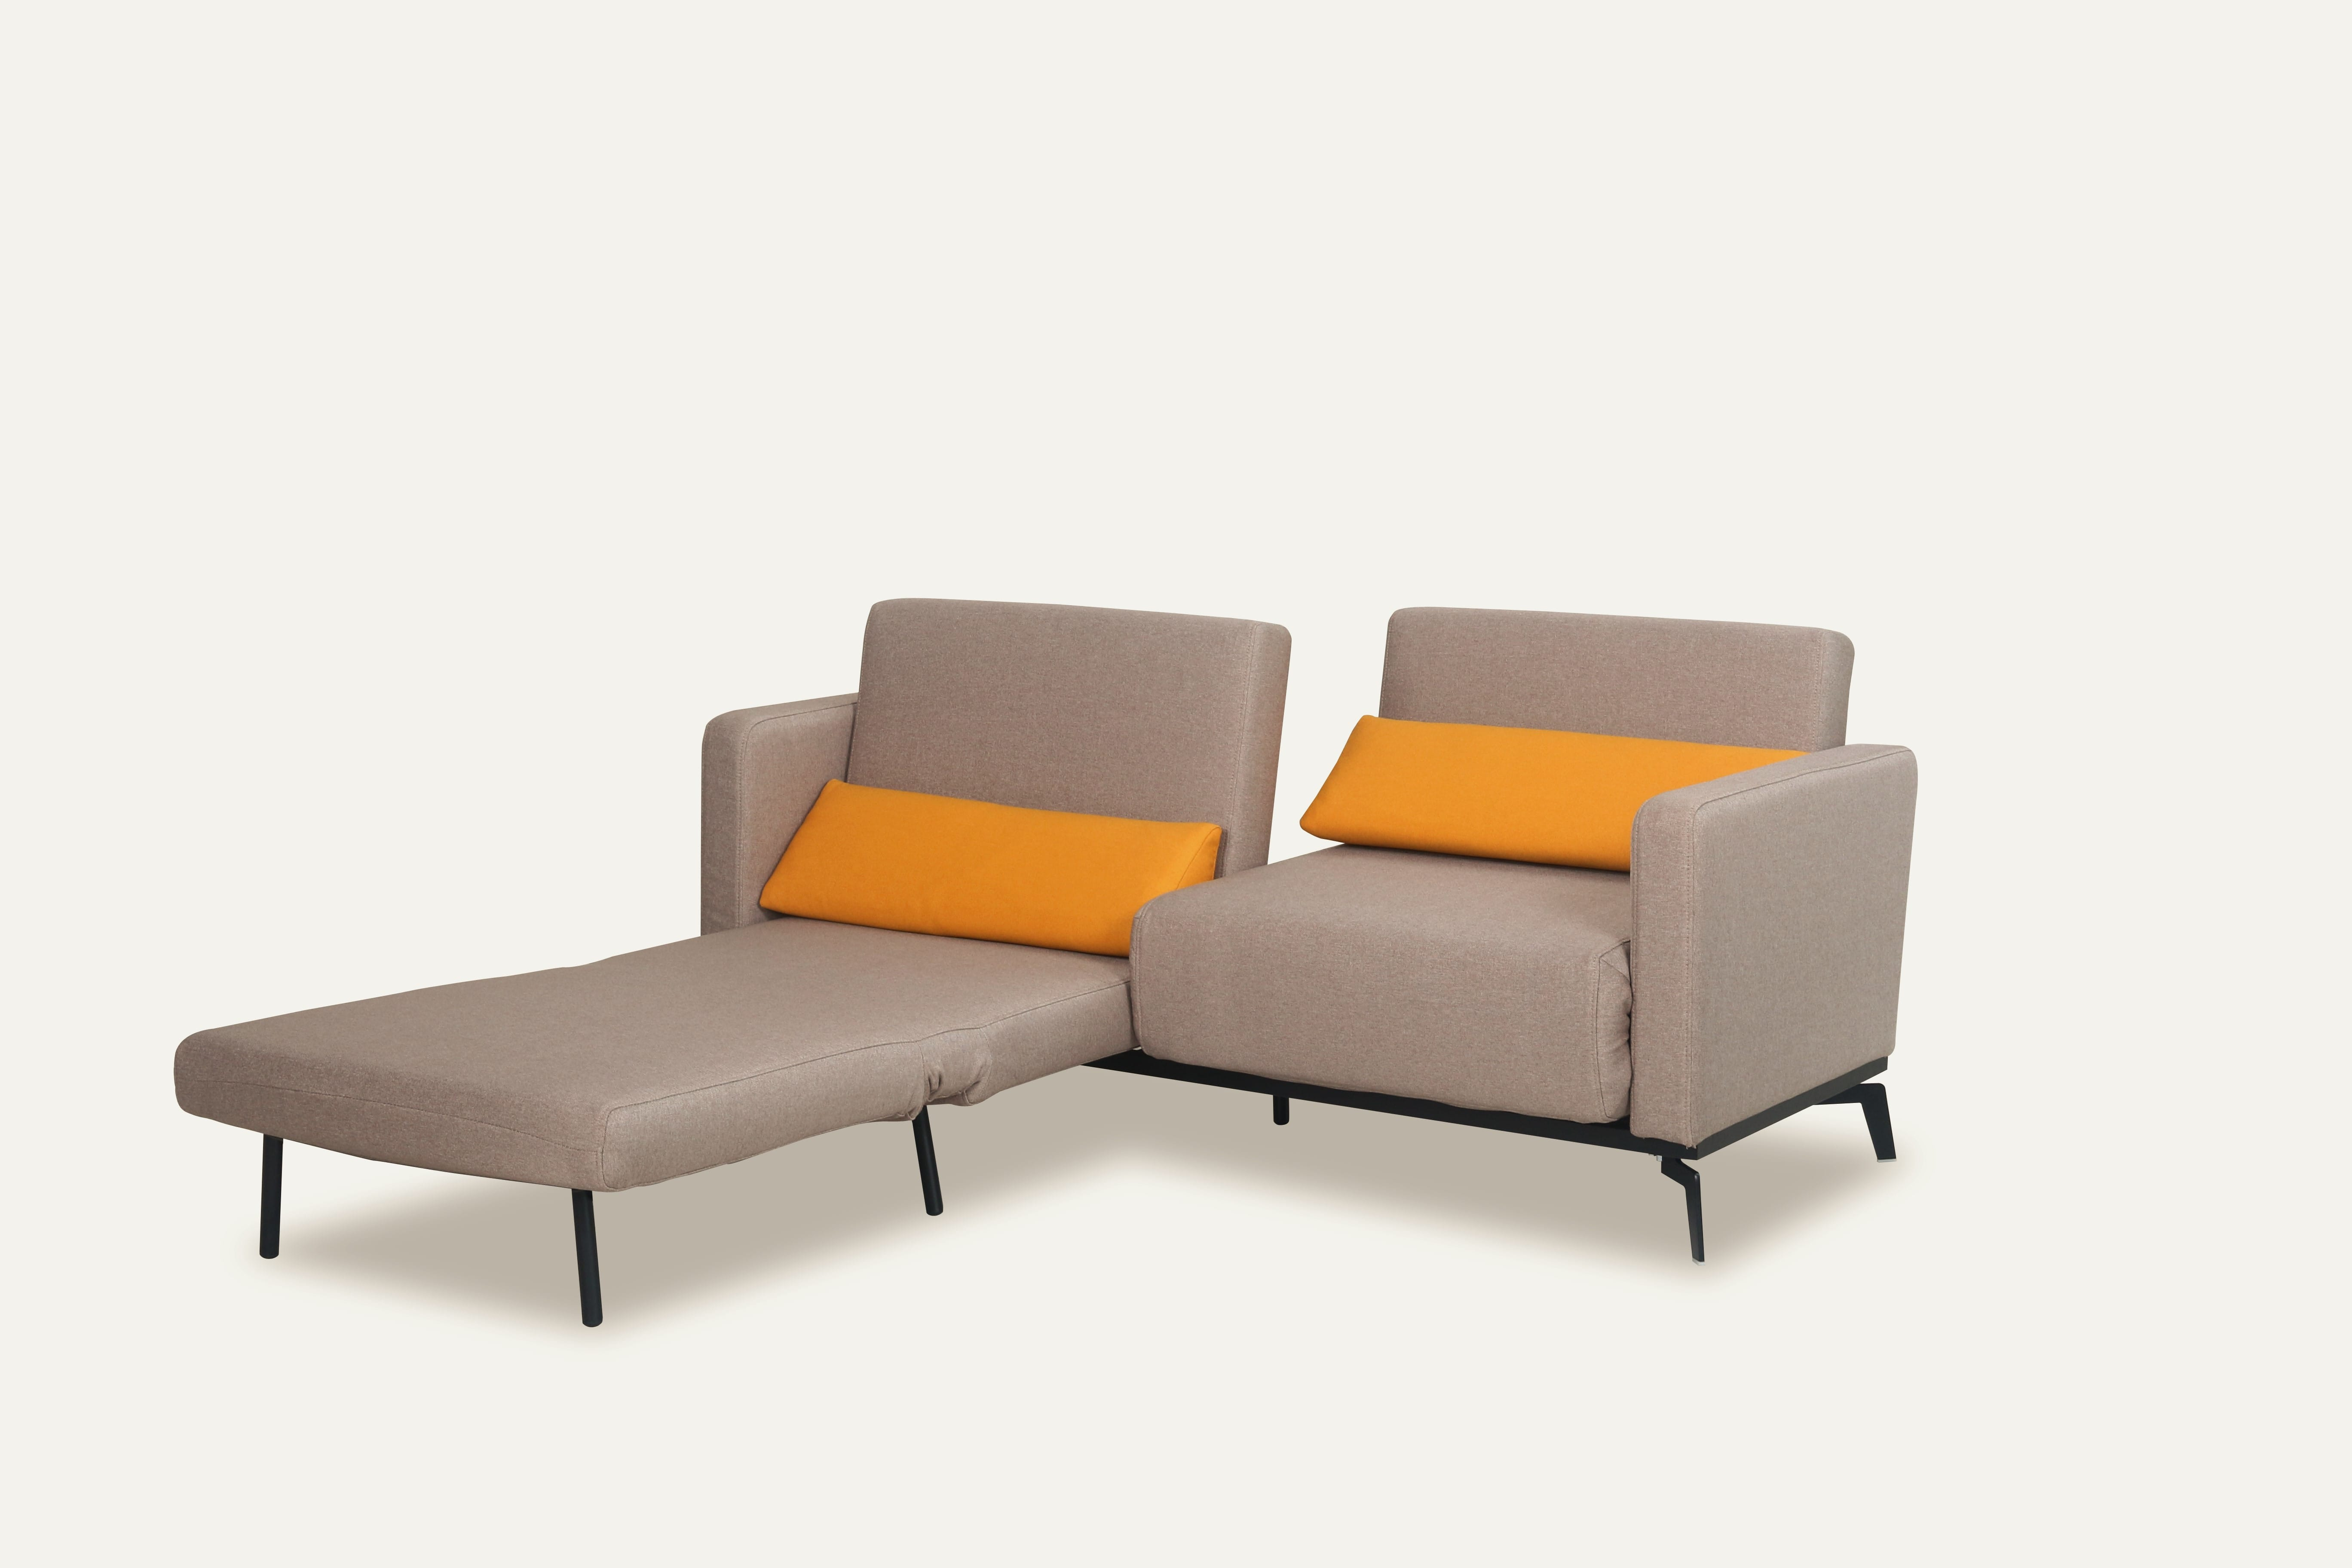 sofa bed 16 brown yelow by new spec